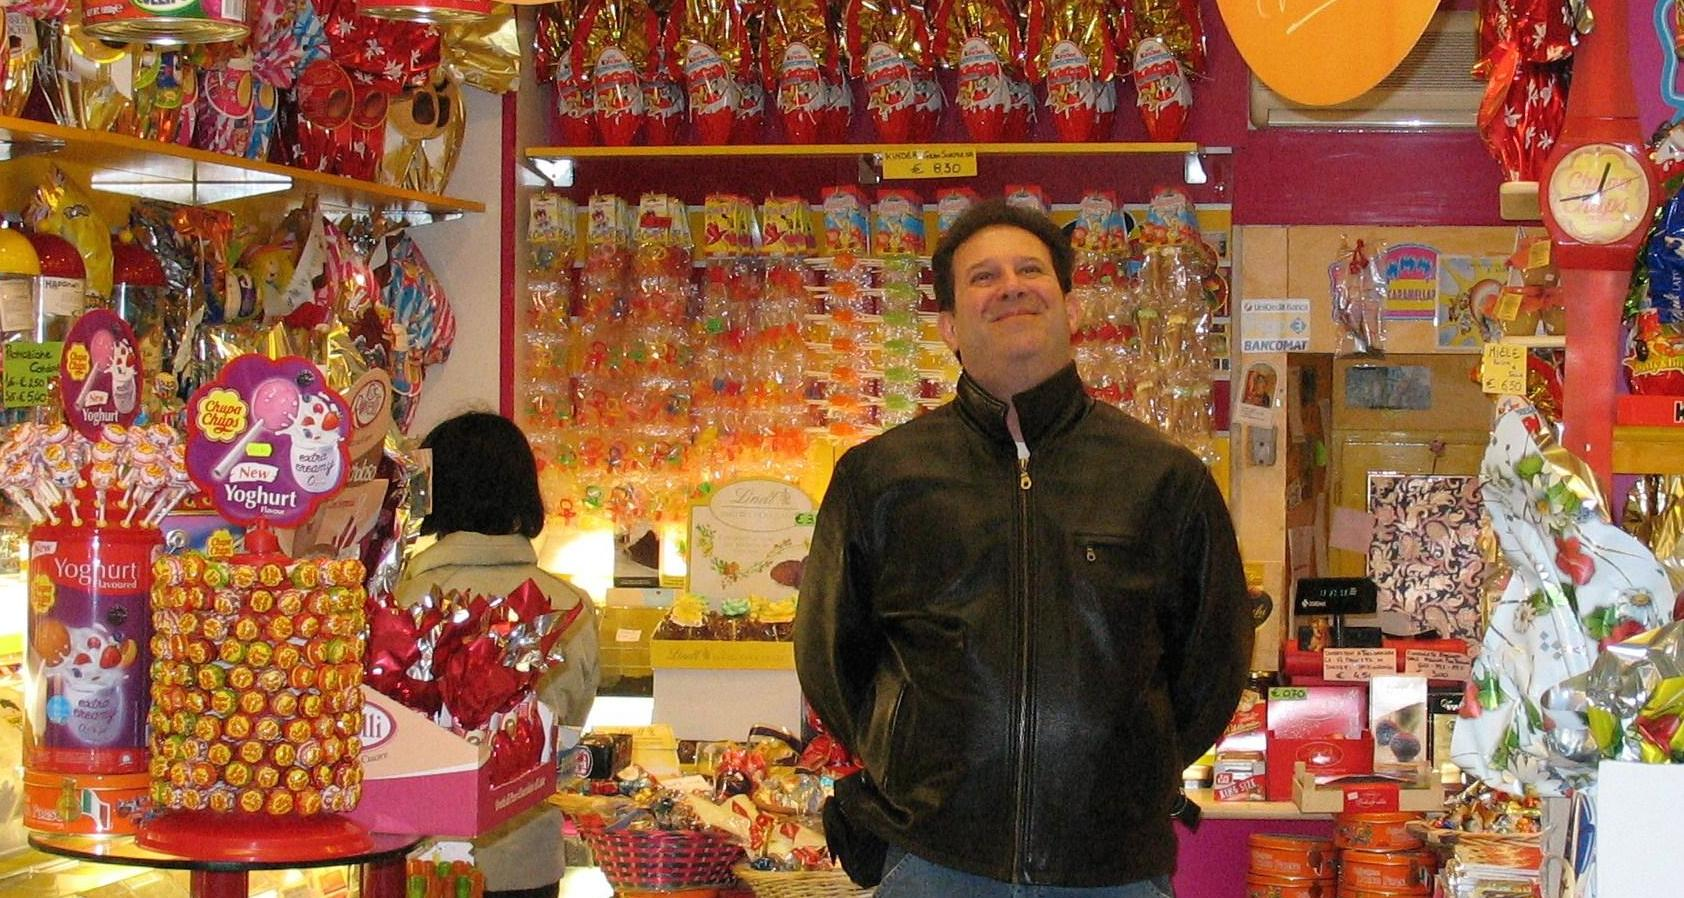 Ira Gutner is surrounded by sweets at a candy store in Italy in March 2007. Courtesy Photo / John Schwartz